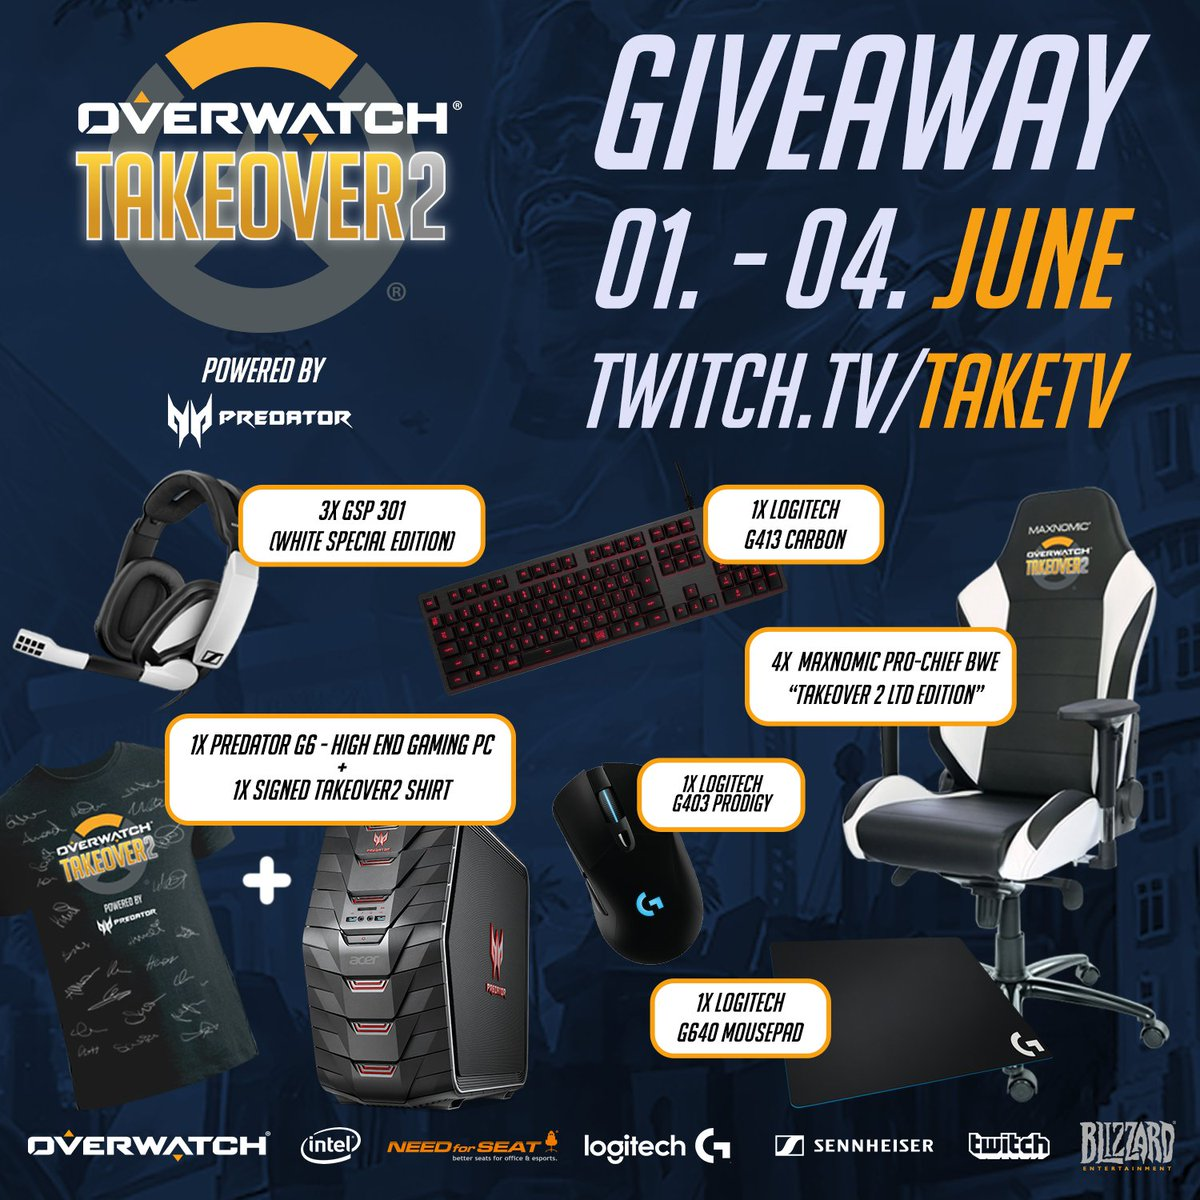 Our #OWTakeOver giveaway is still up and running! https://t.co/RaDi1GnxMv https://t.co/nCFvzShERW